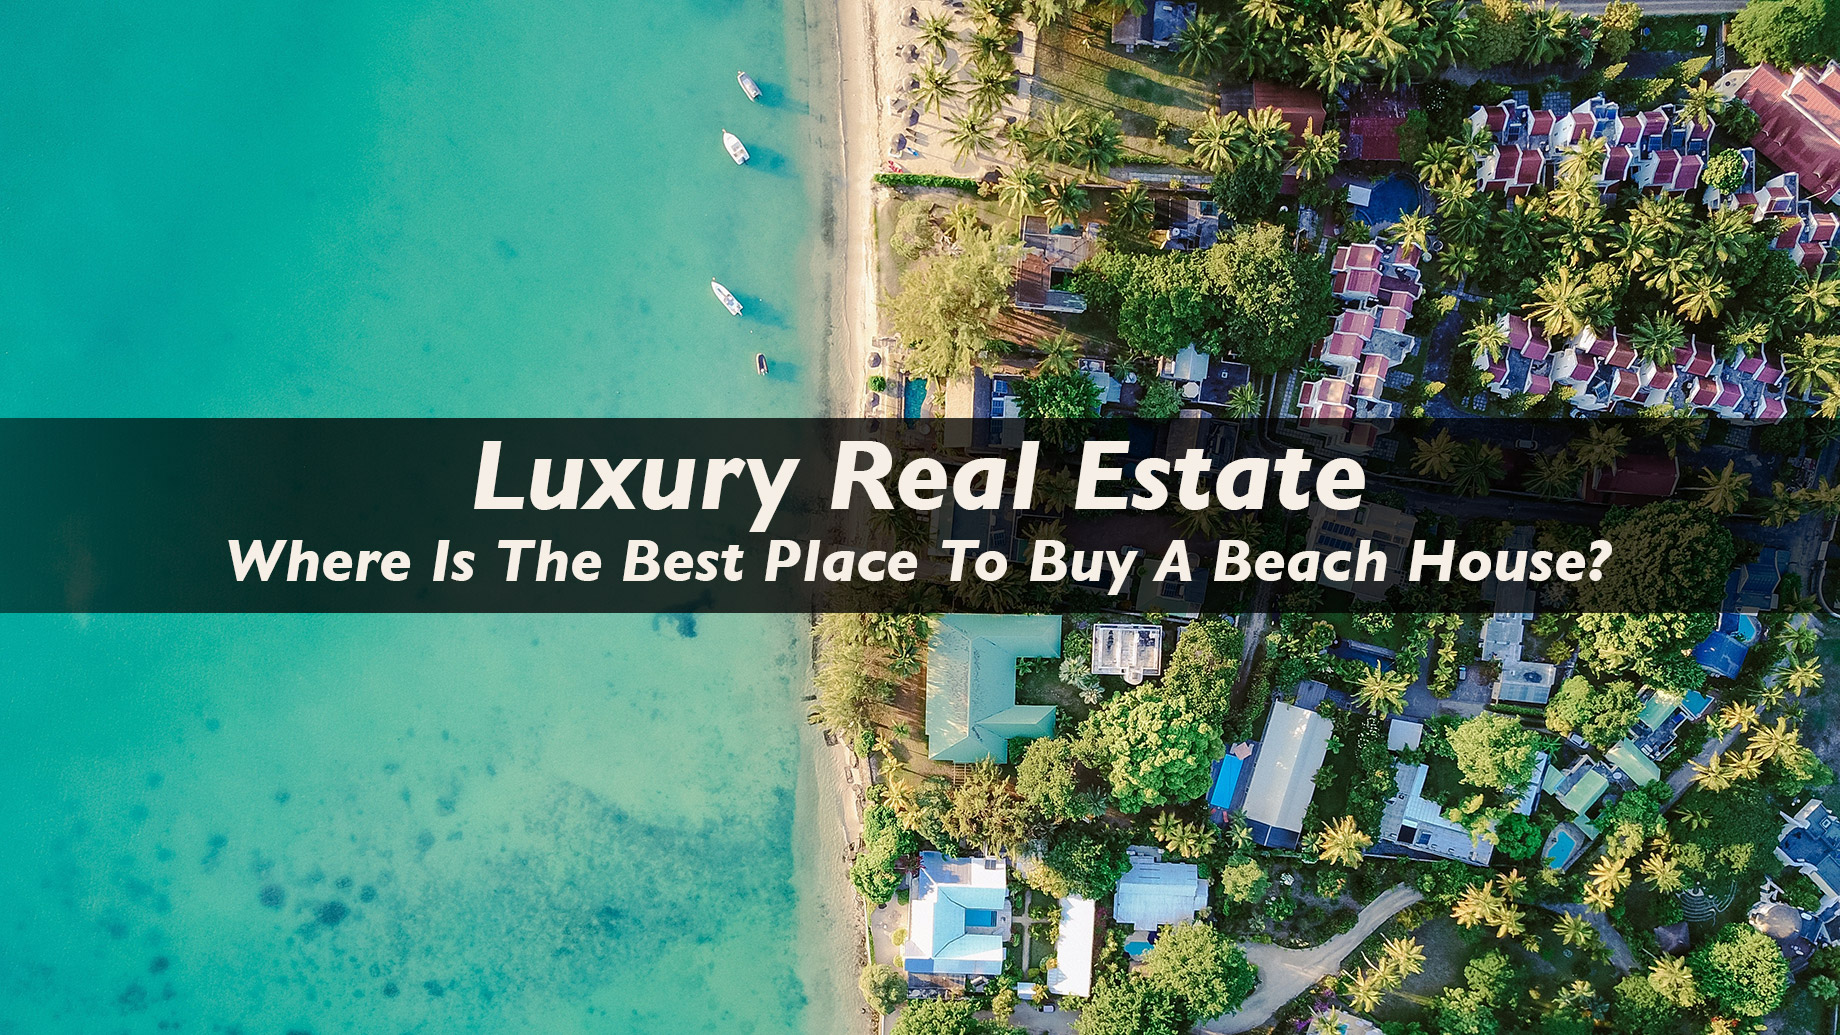 Luxury Real Estate - Where Is The Best Place To Buy A Beach House?